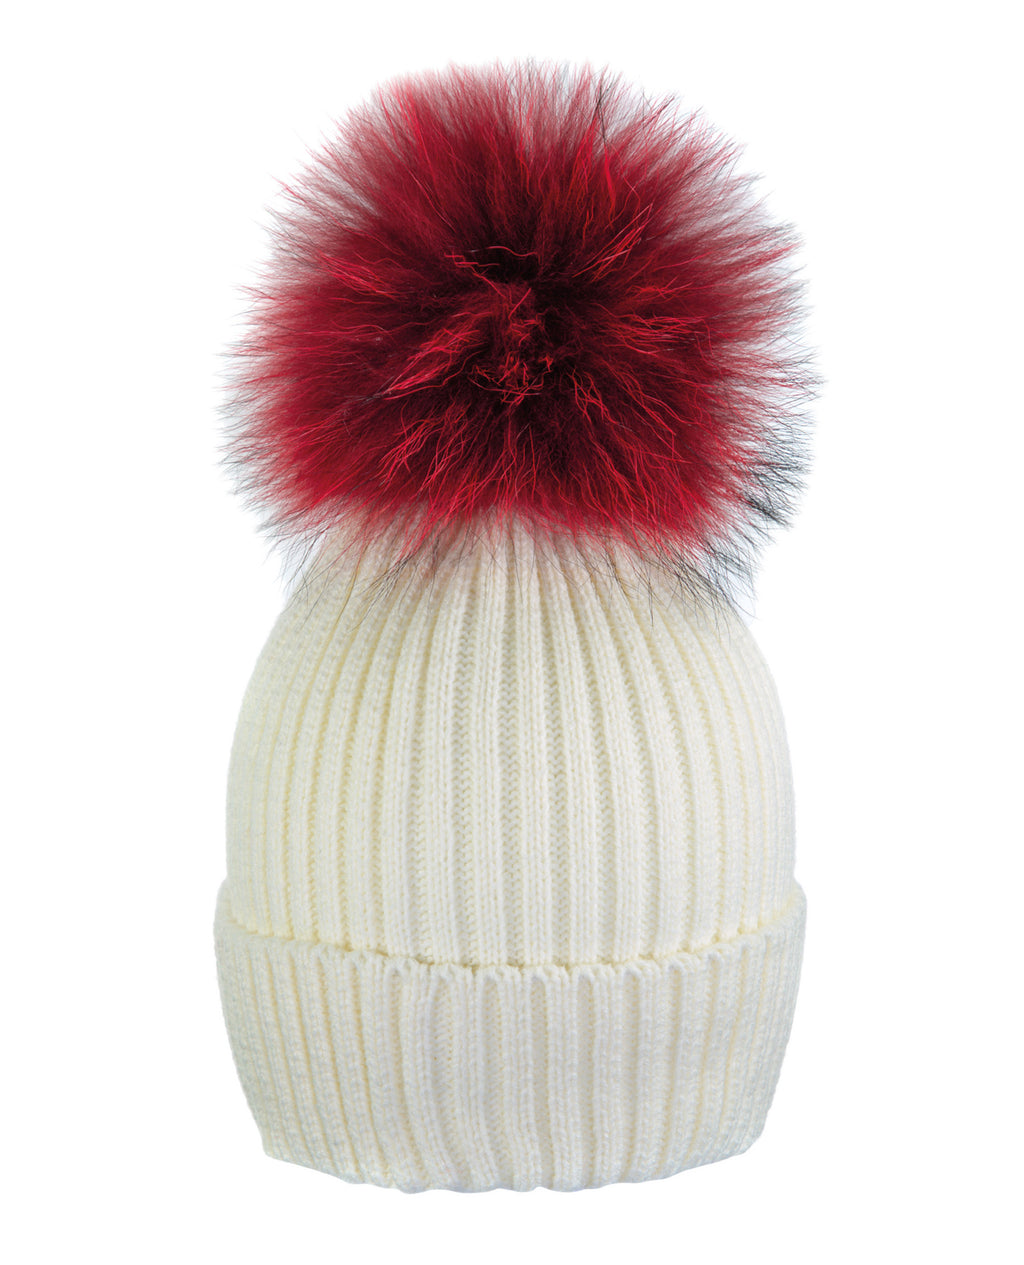 Cream White/Red Beanie Hat With Exclusive Pom Pom